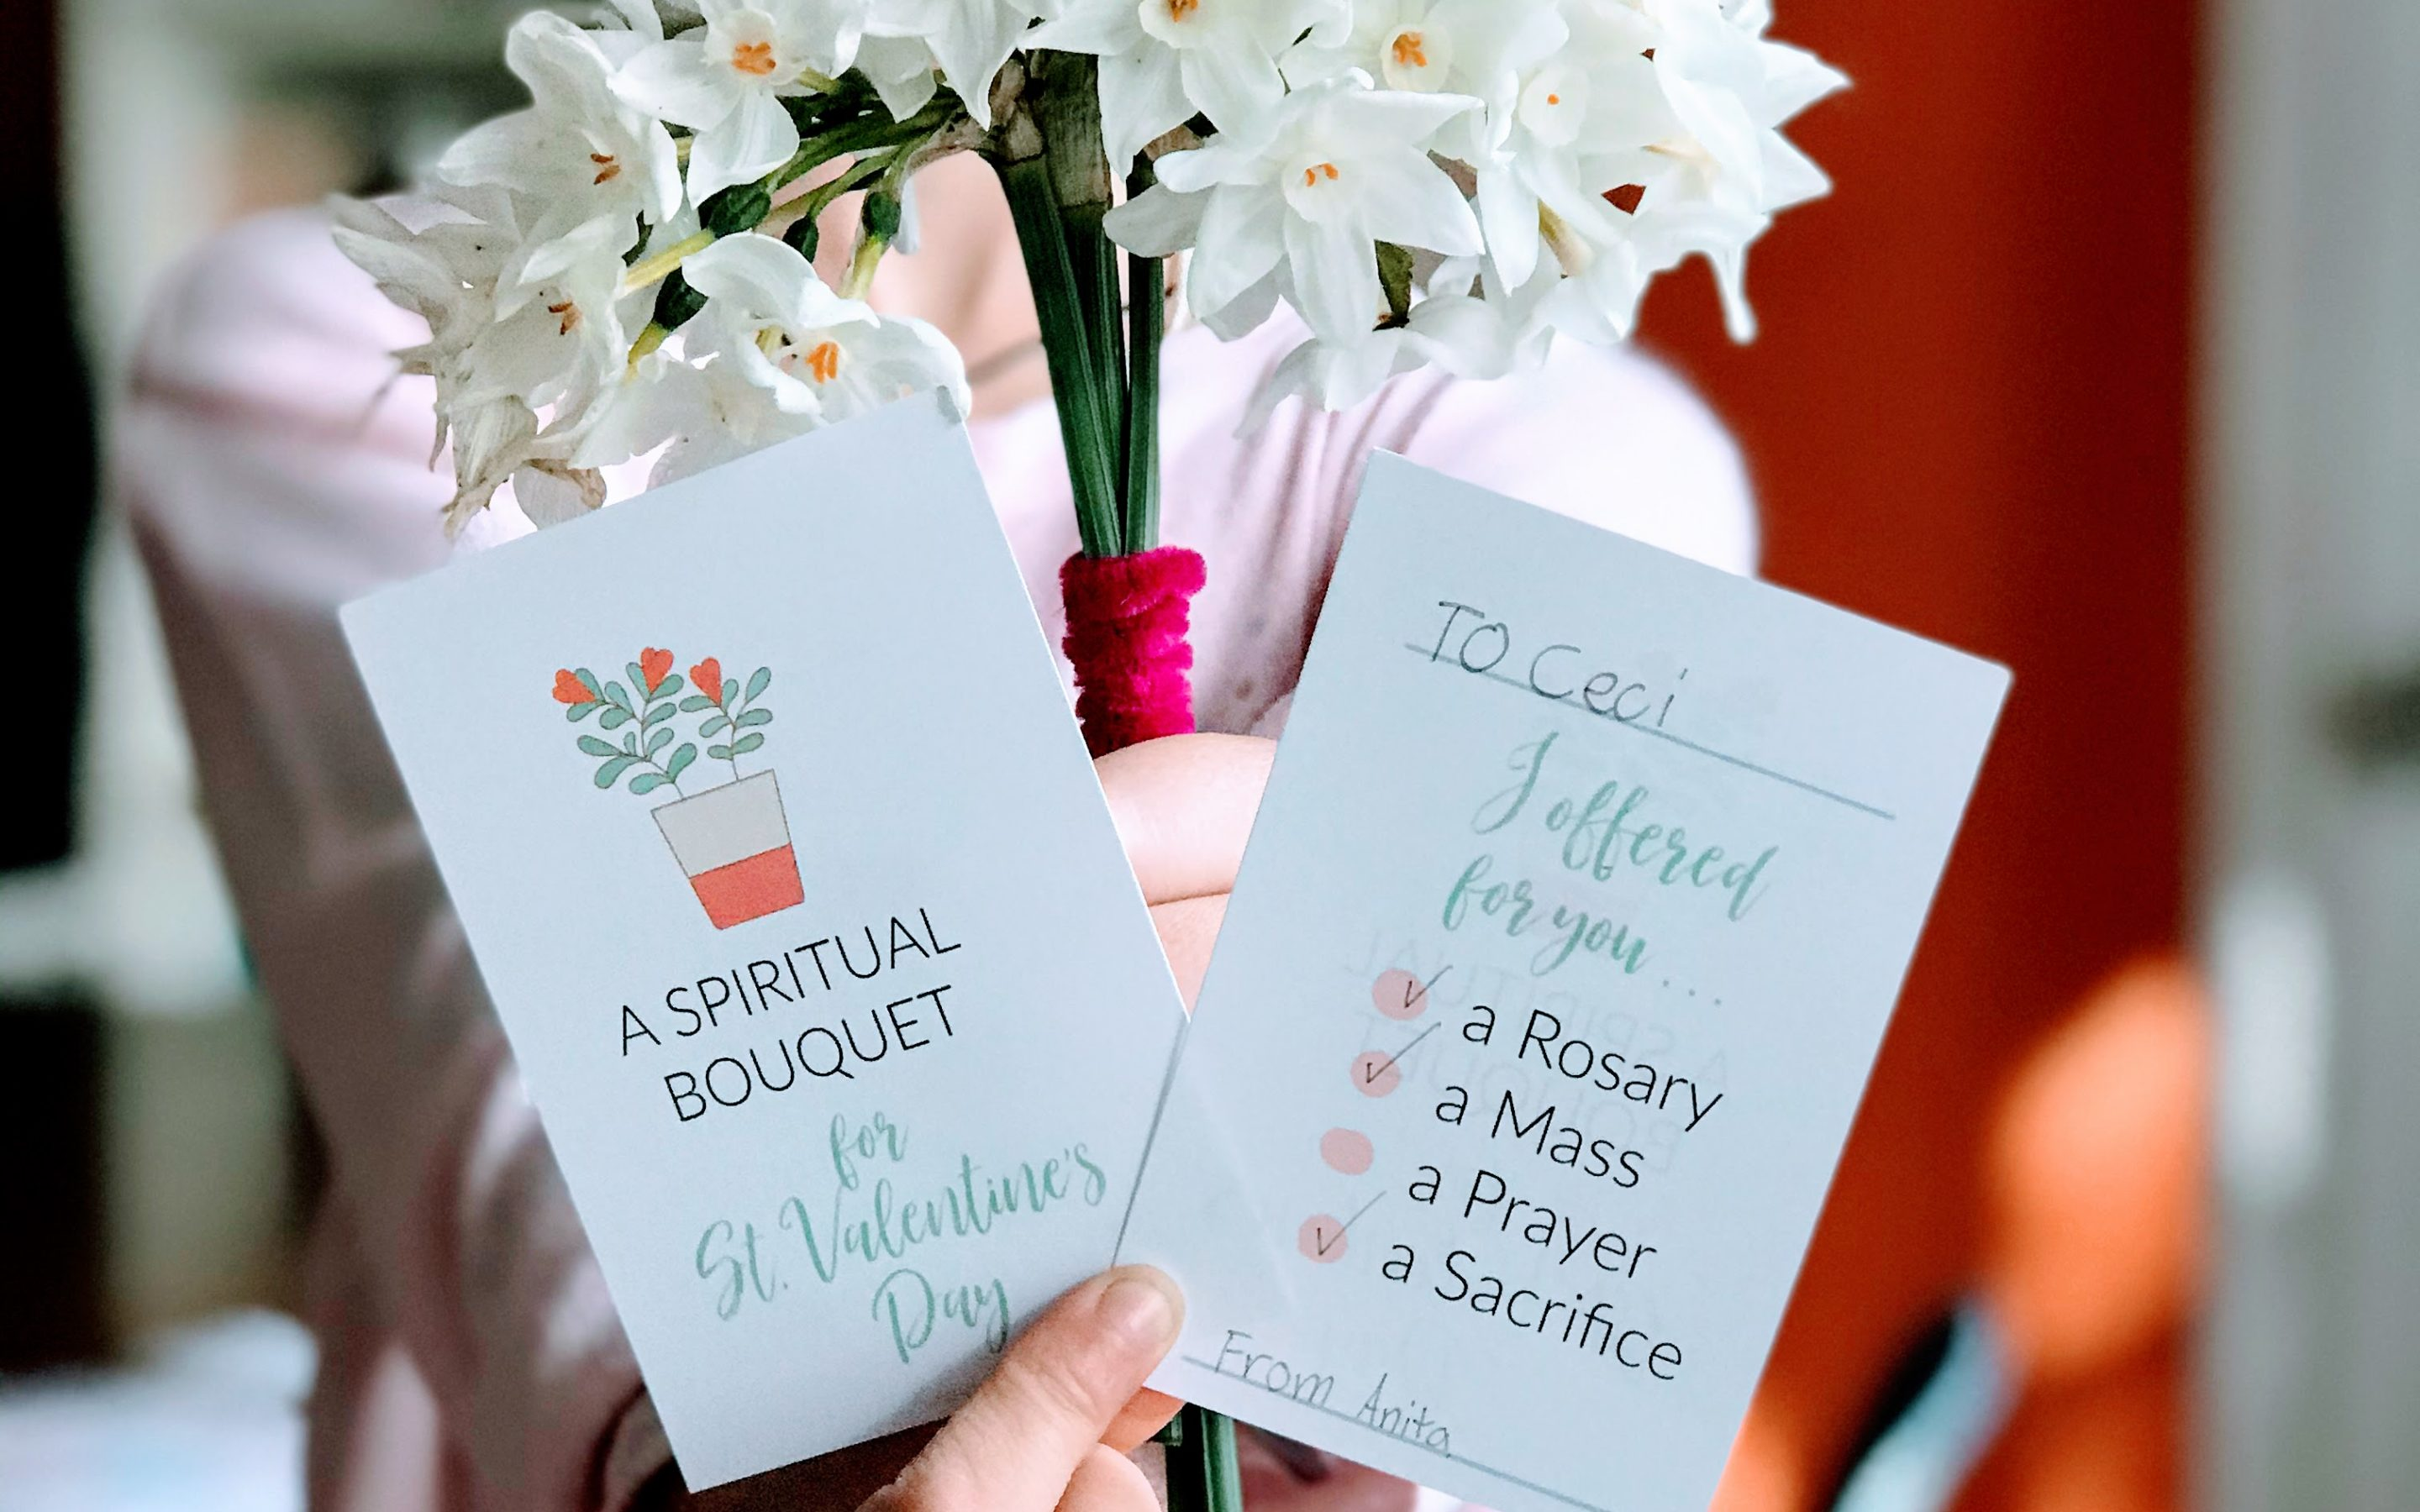 Catholic Valentine Cards {digital download} Spiritual Bouquet 8.5×11 pages to print and cut at home